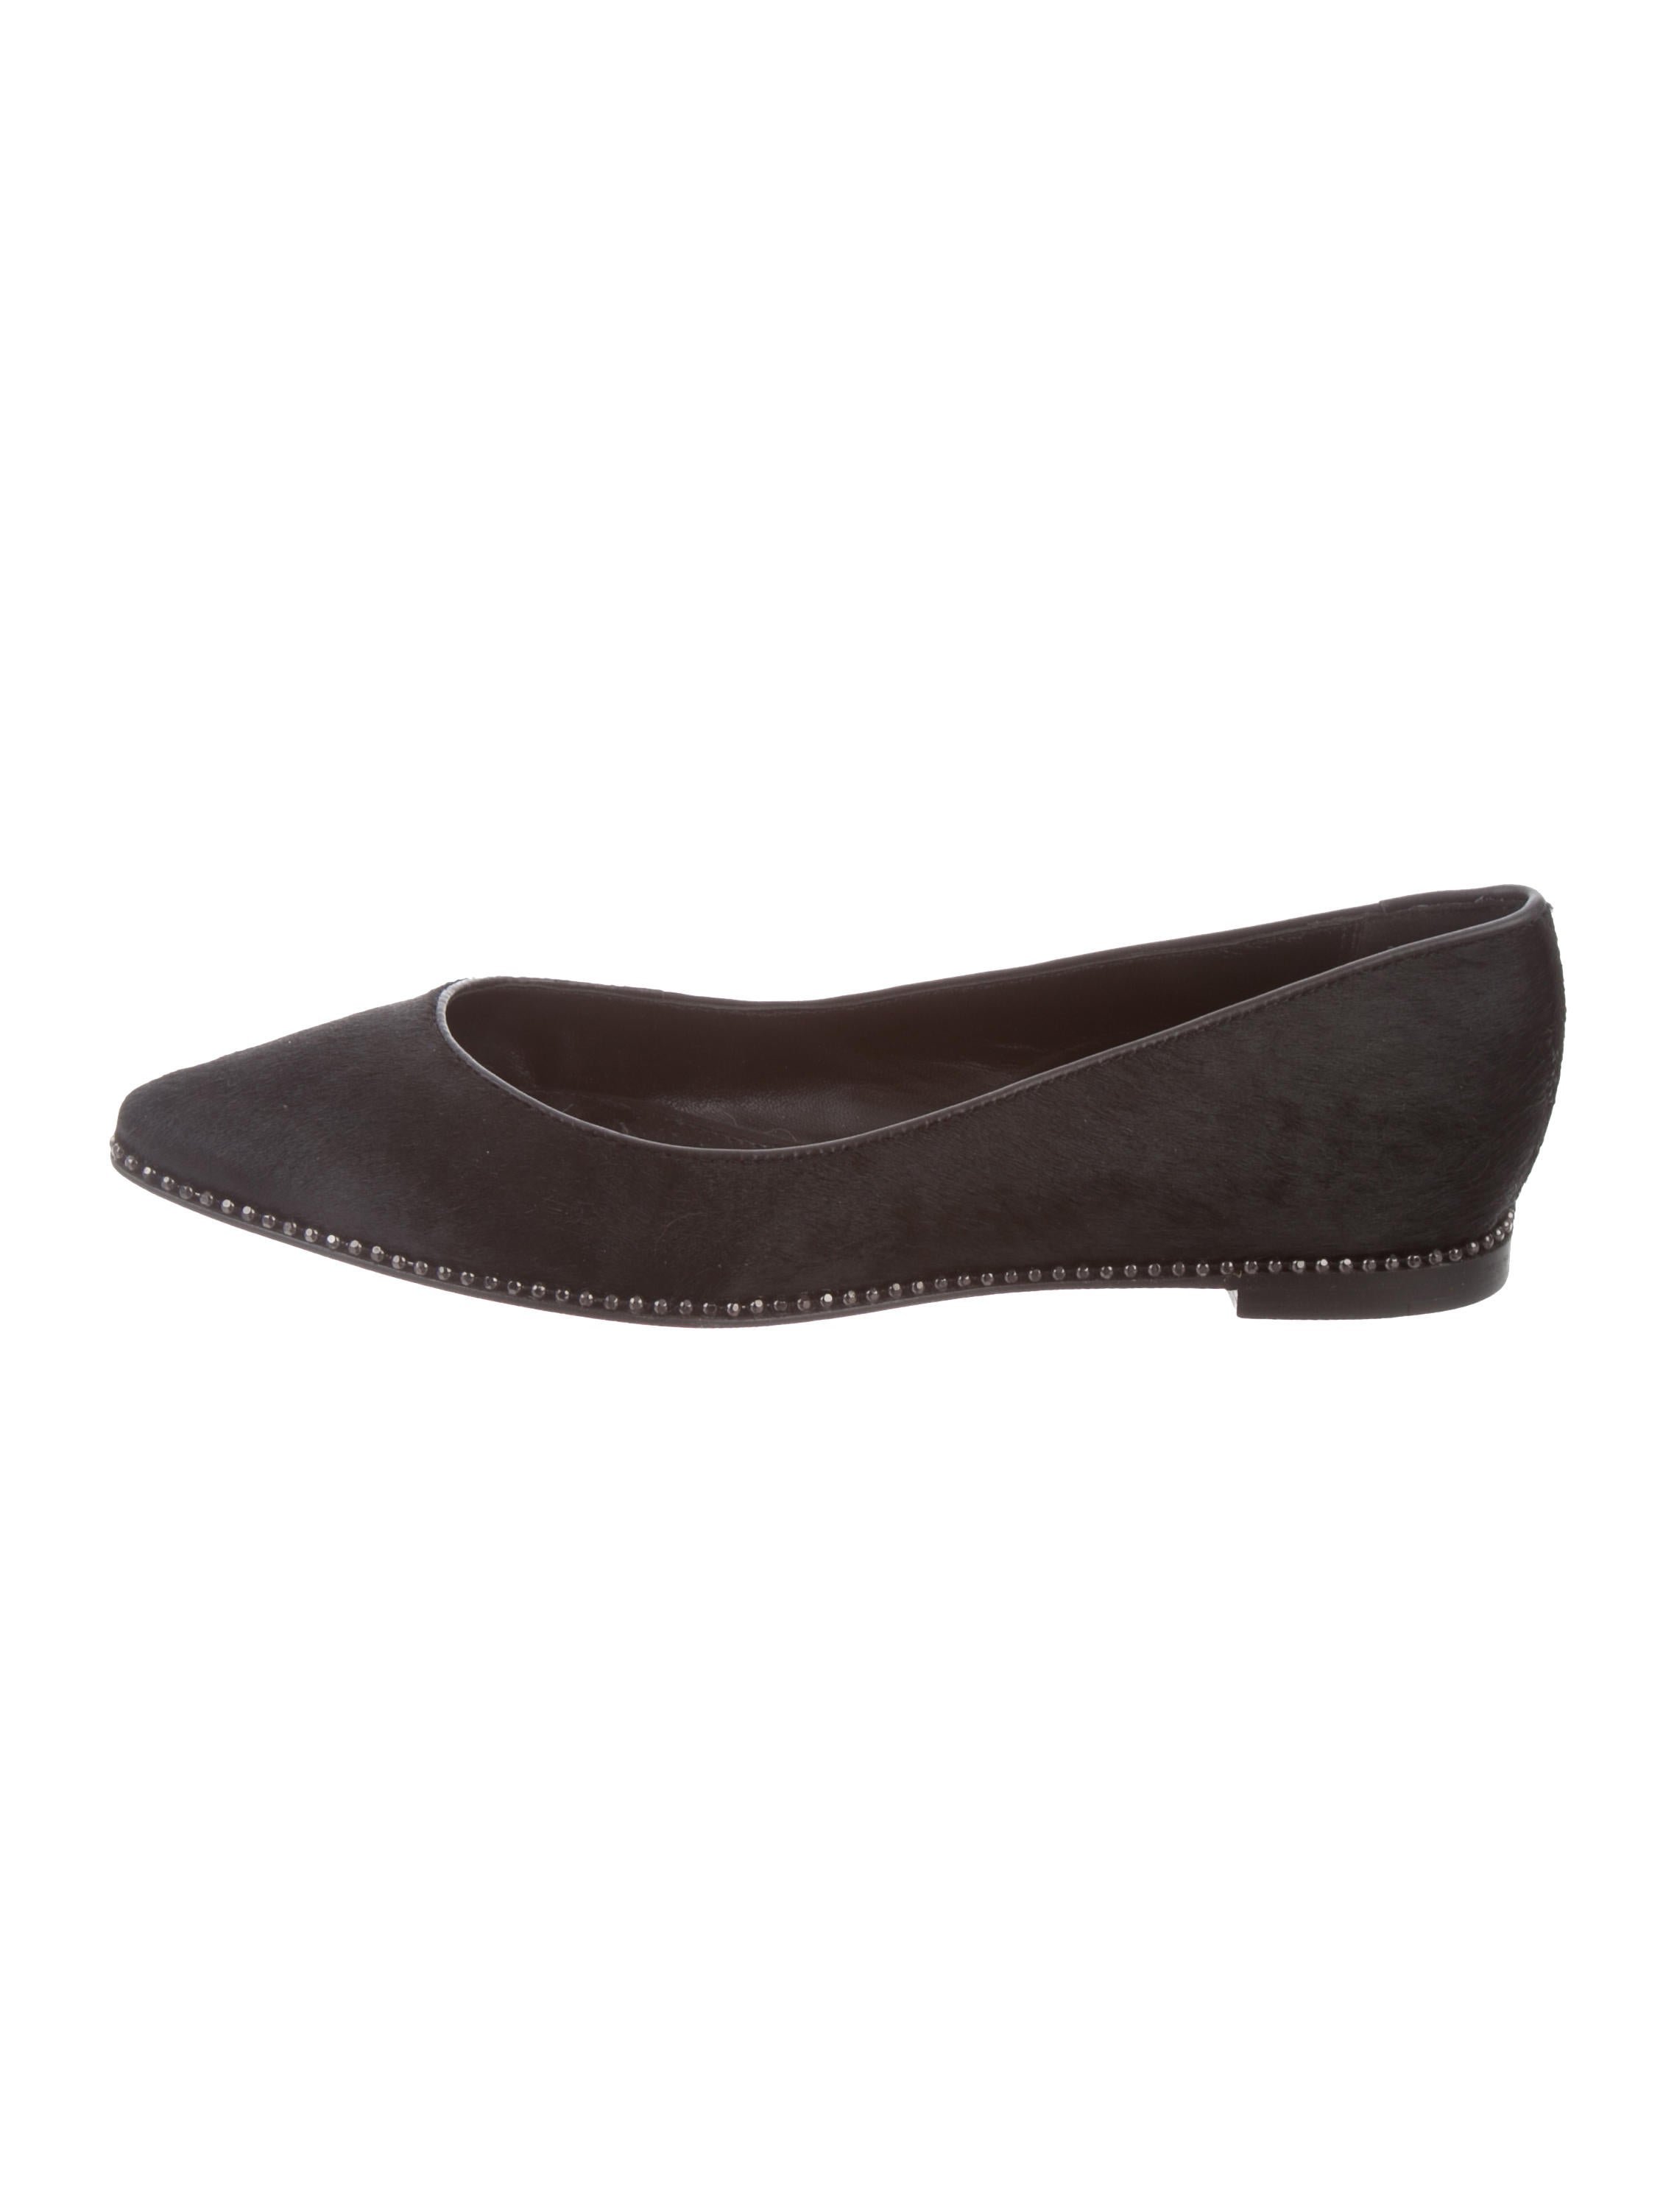 Coach Embellished Ponyhair Flats manchester great sale sale online 100% authentic online discount choice outlet eastbay LZykzIZZlE